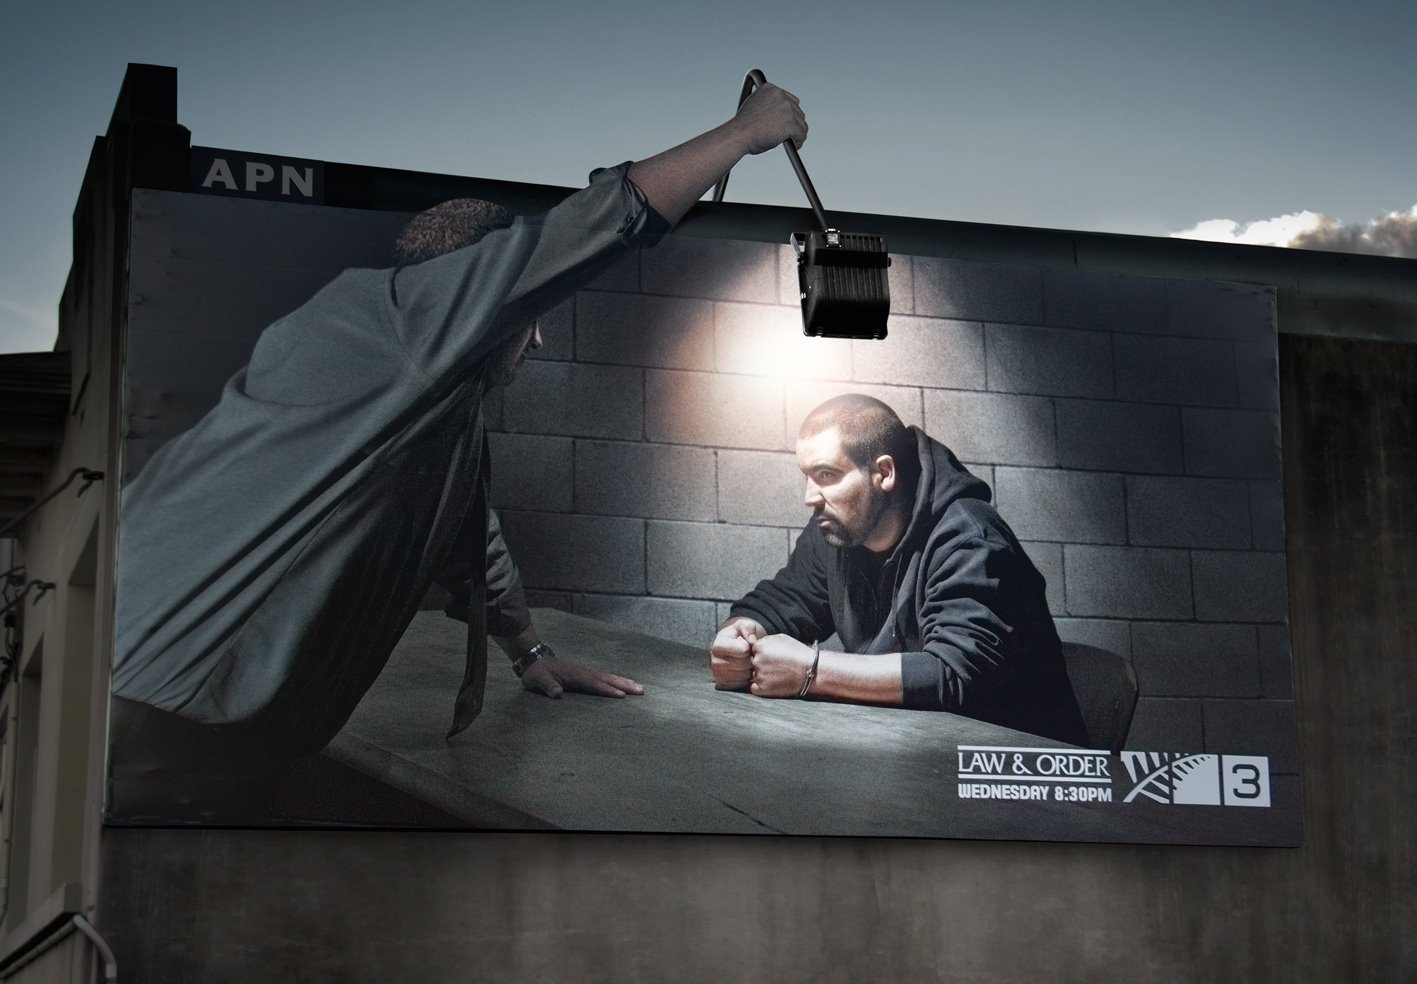 Outdoor-Advertising-44